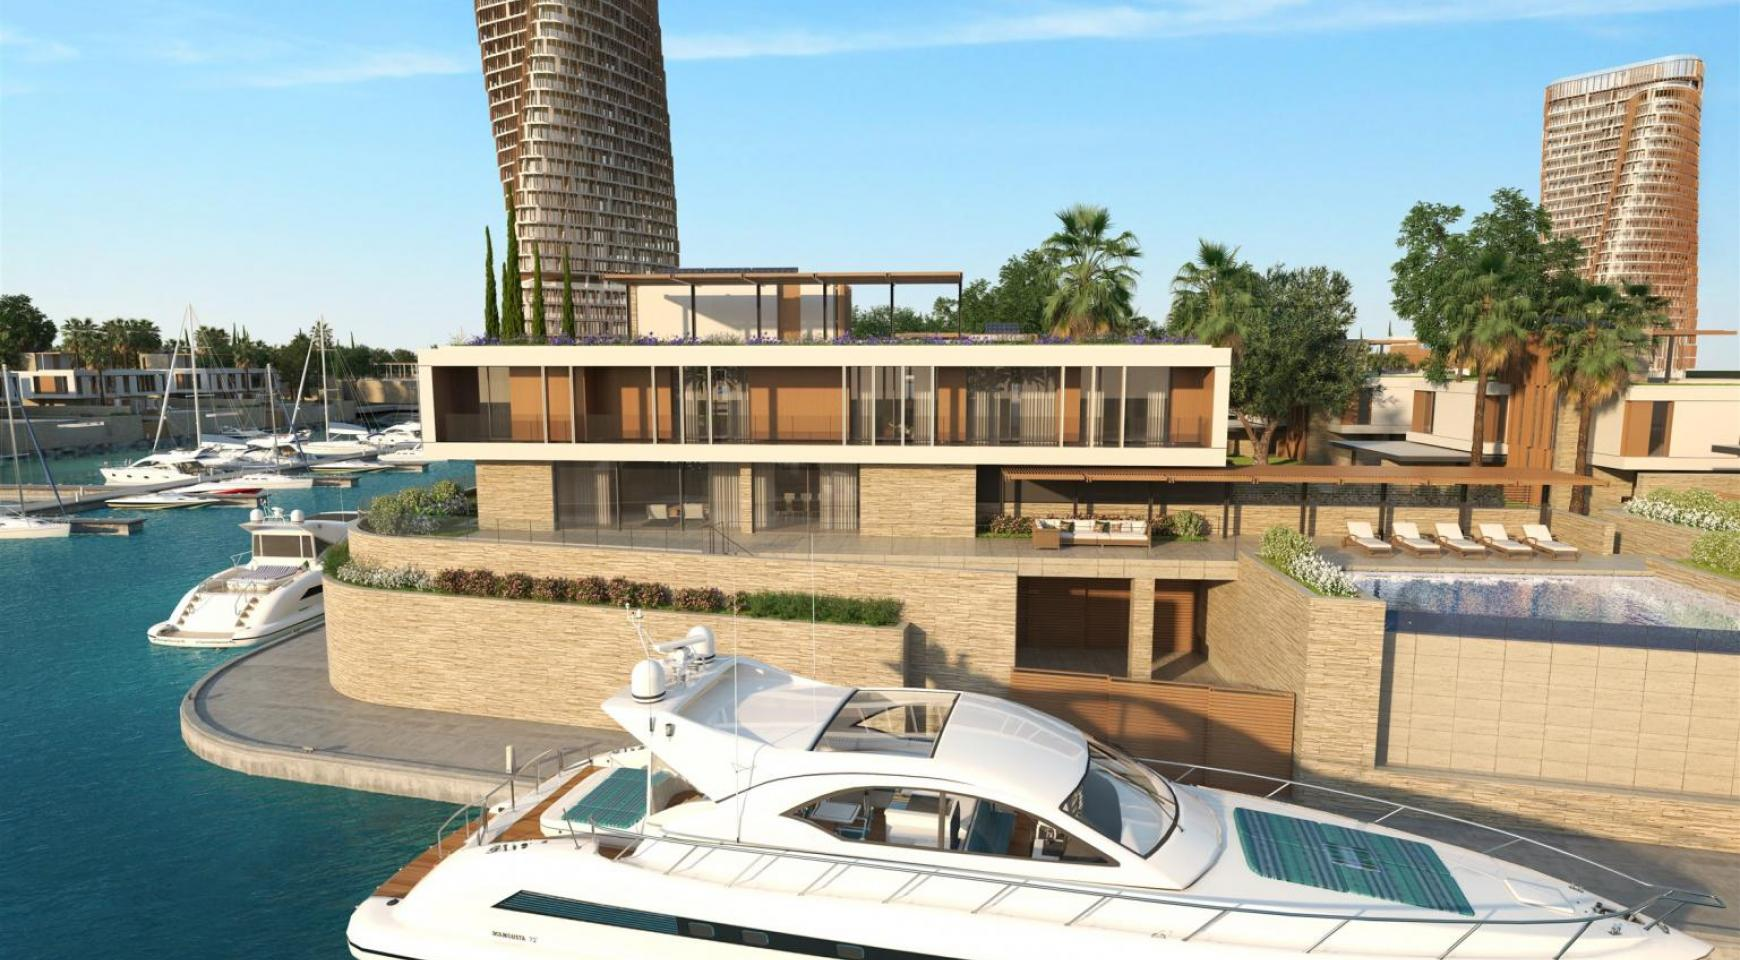 5 Bedroom Villa in an Exclusive Project by the Sea - 4